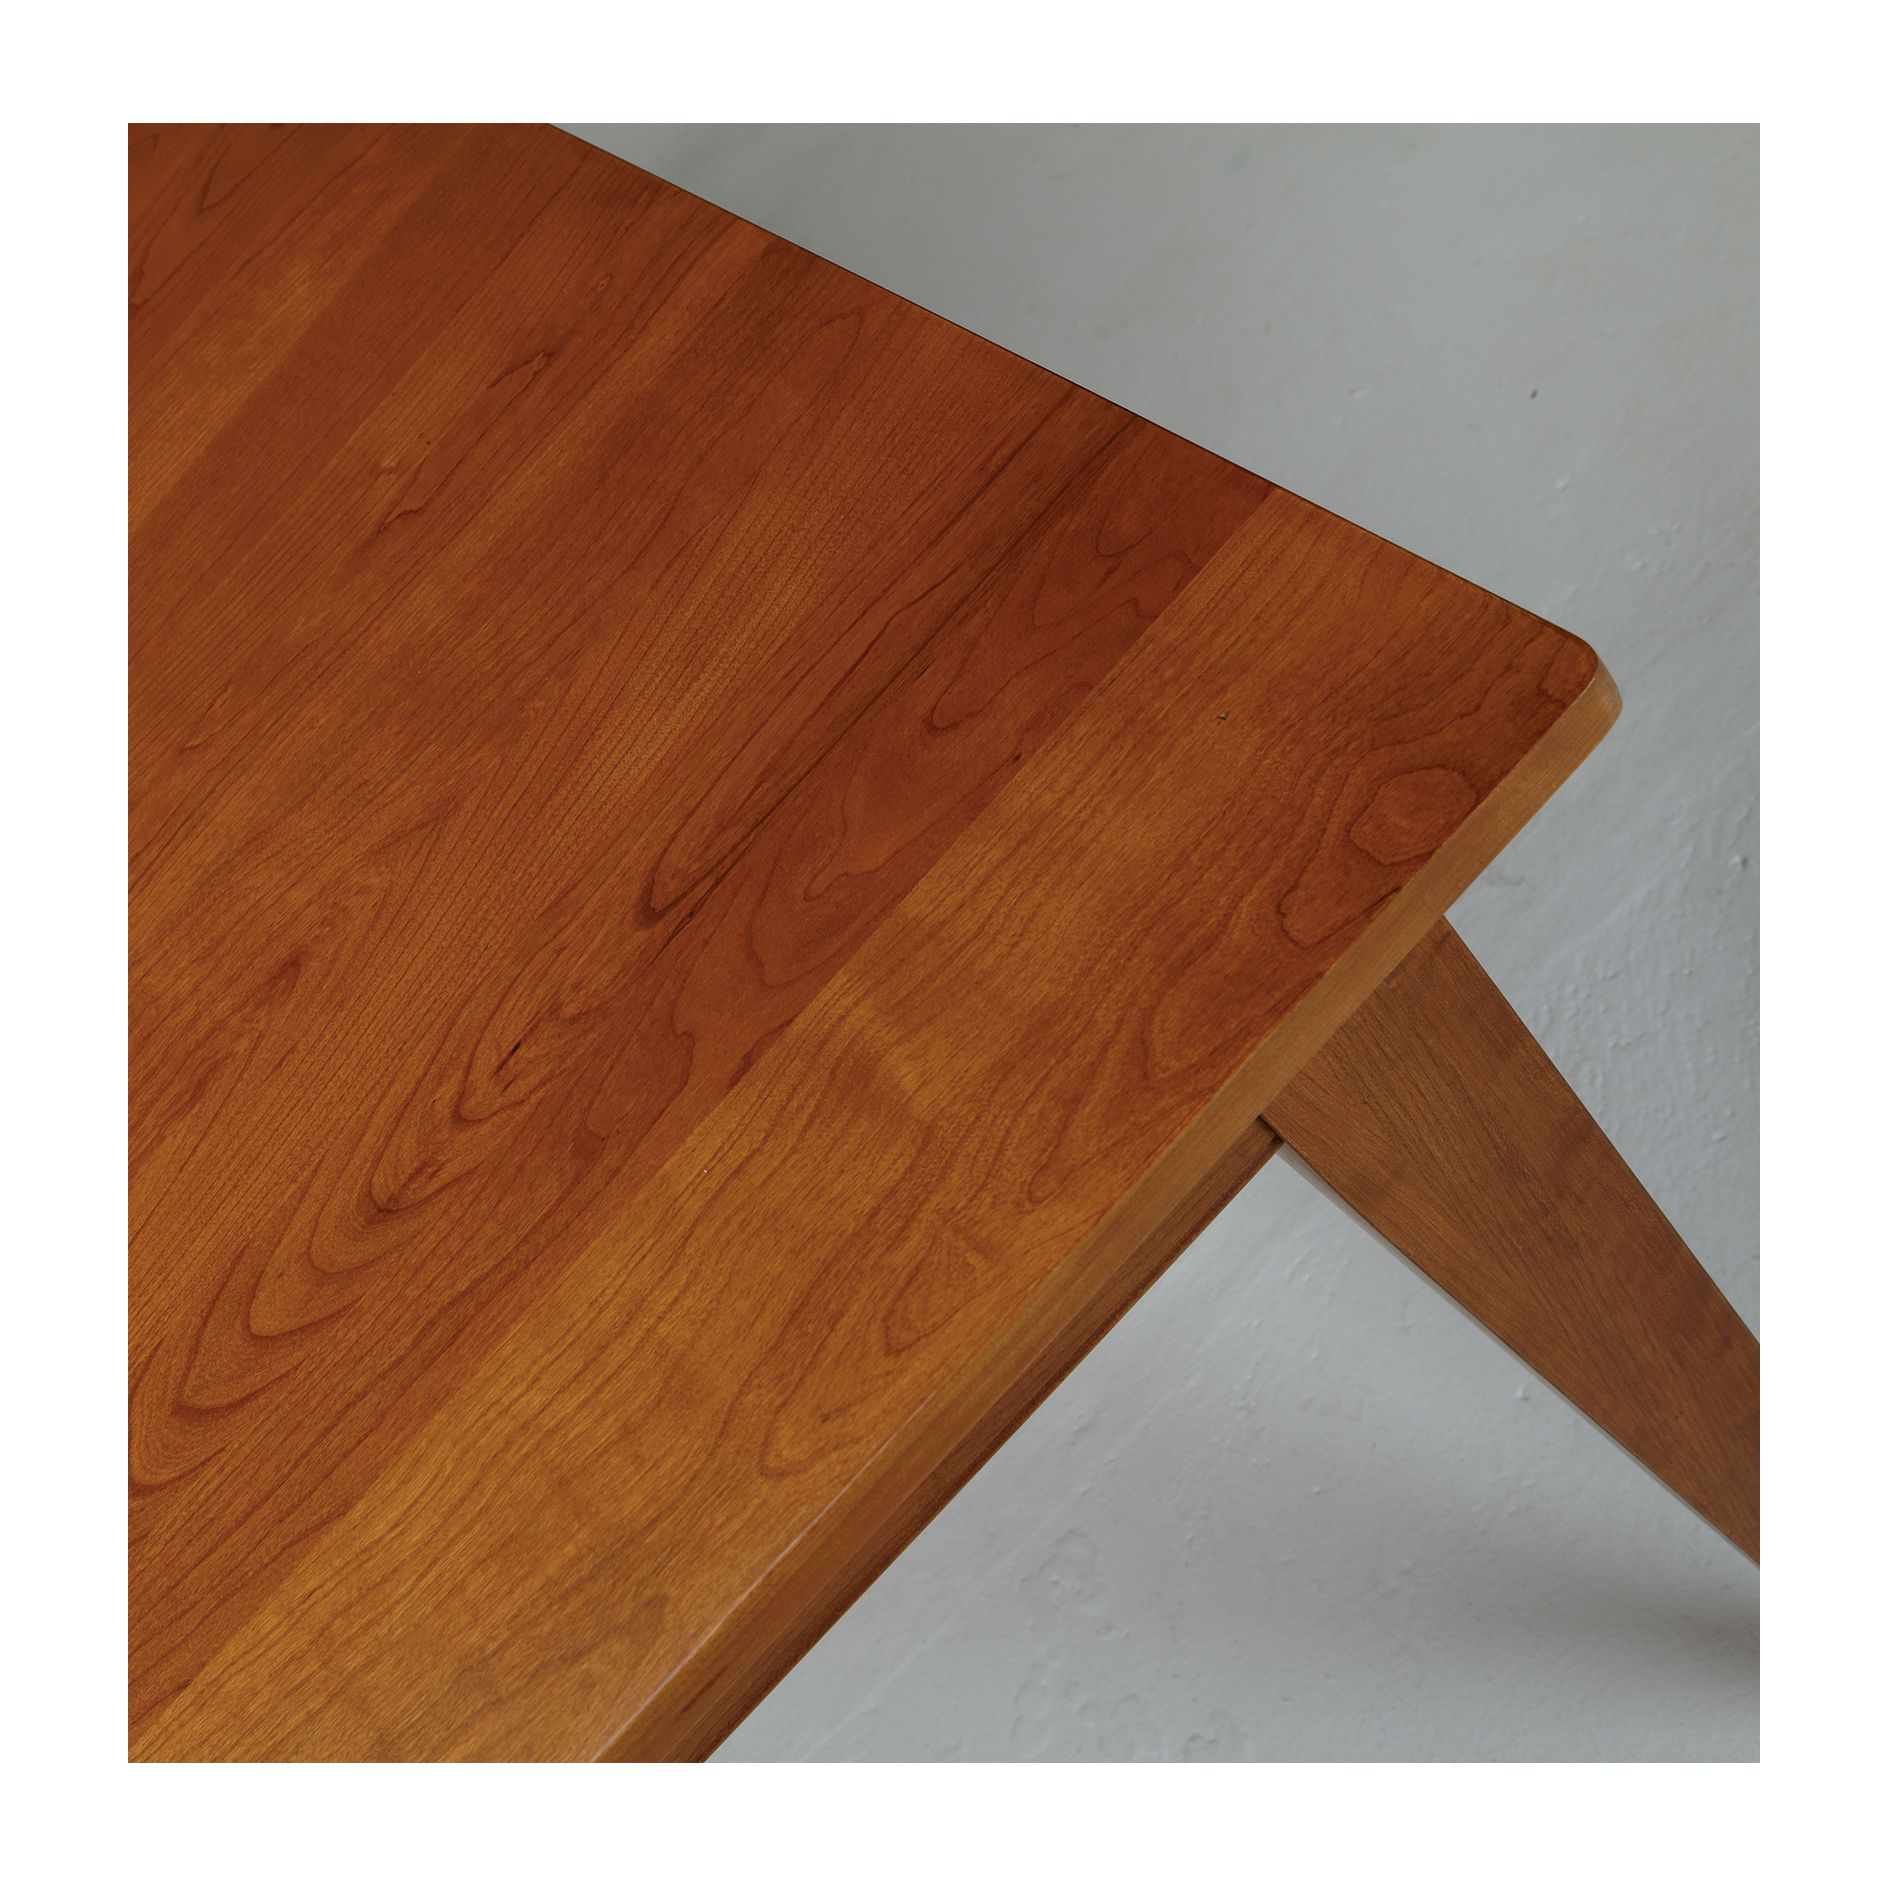 Caring For Wood Furniture Don T Put Anything Hot Directly